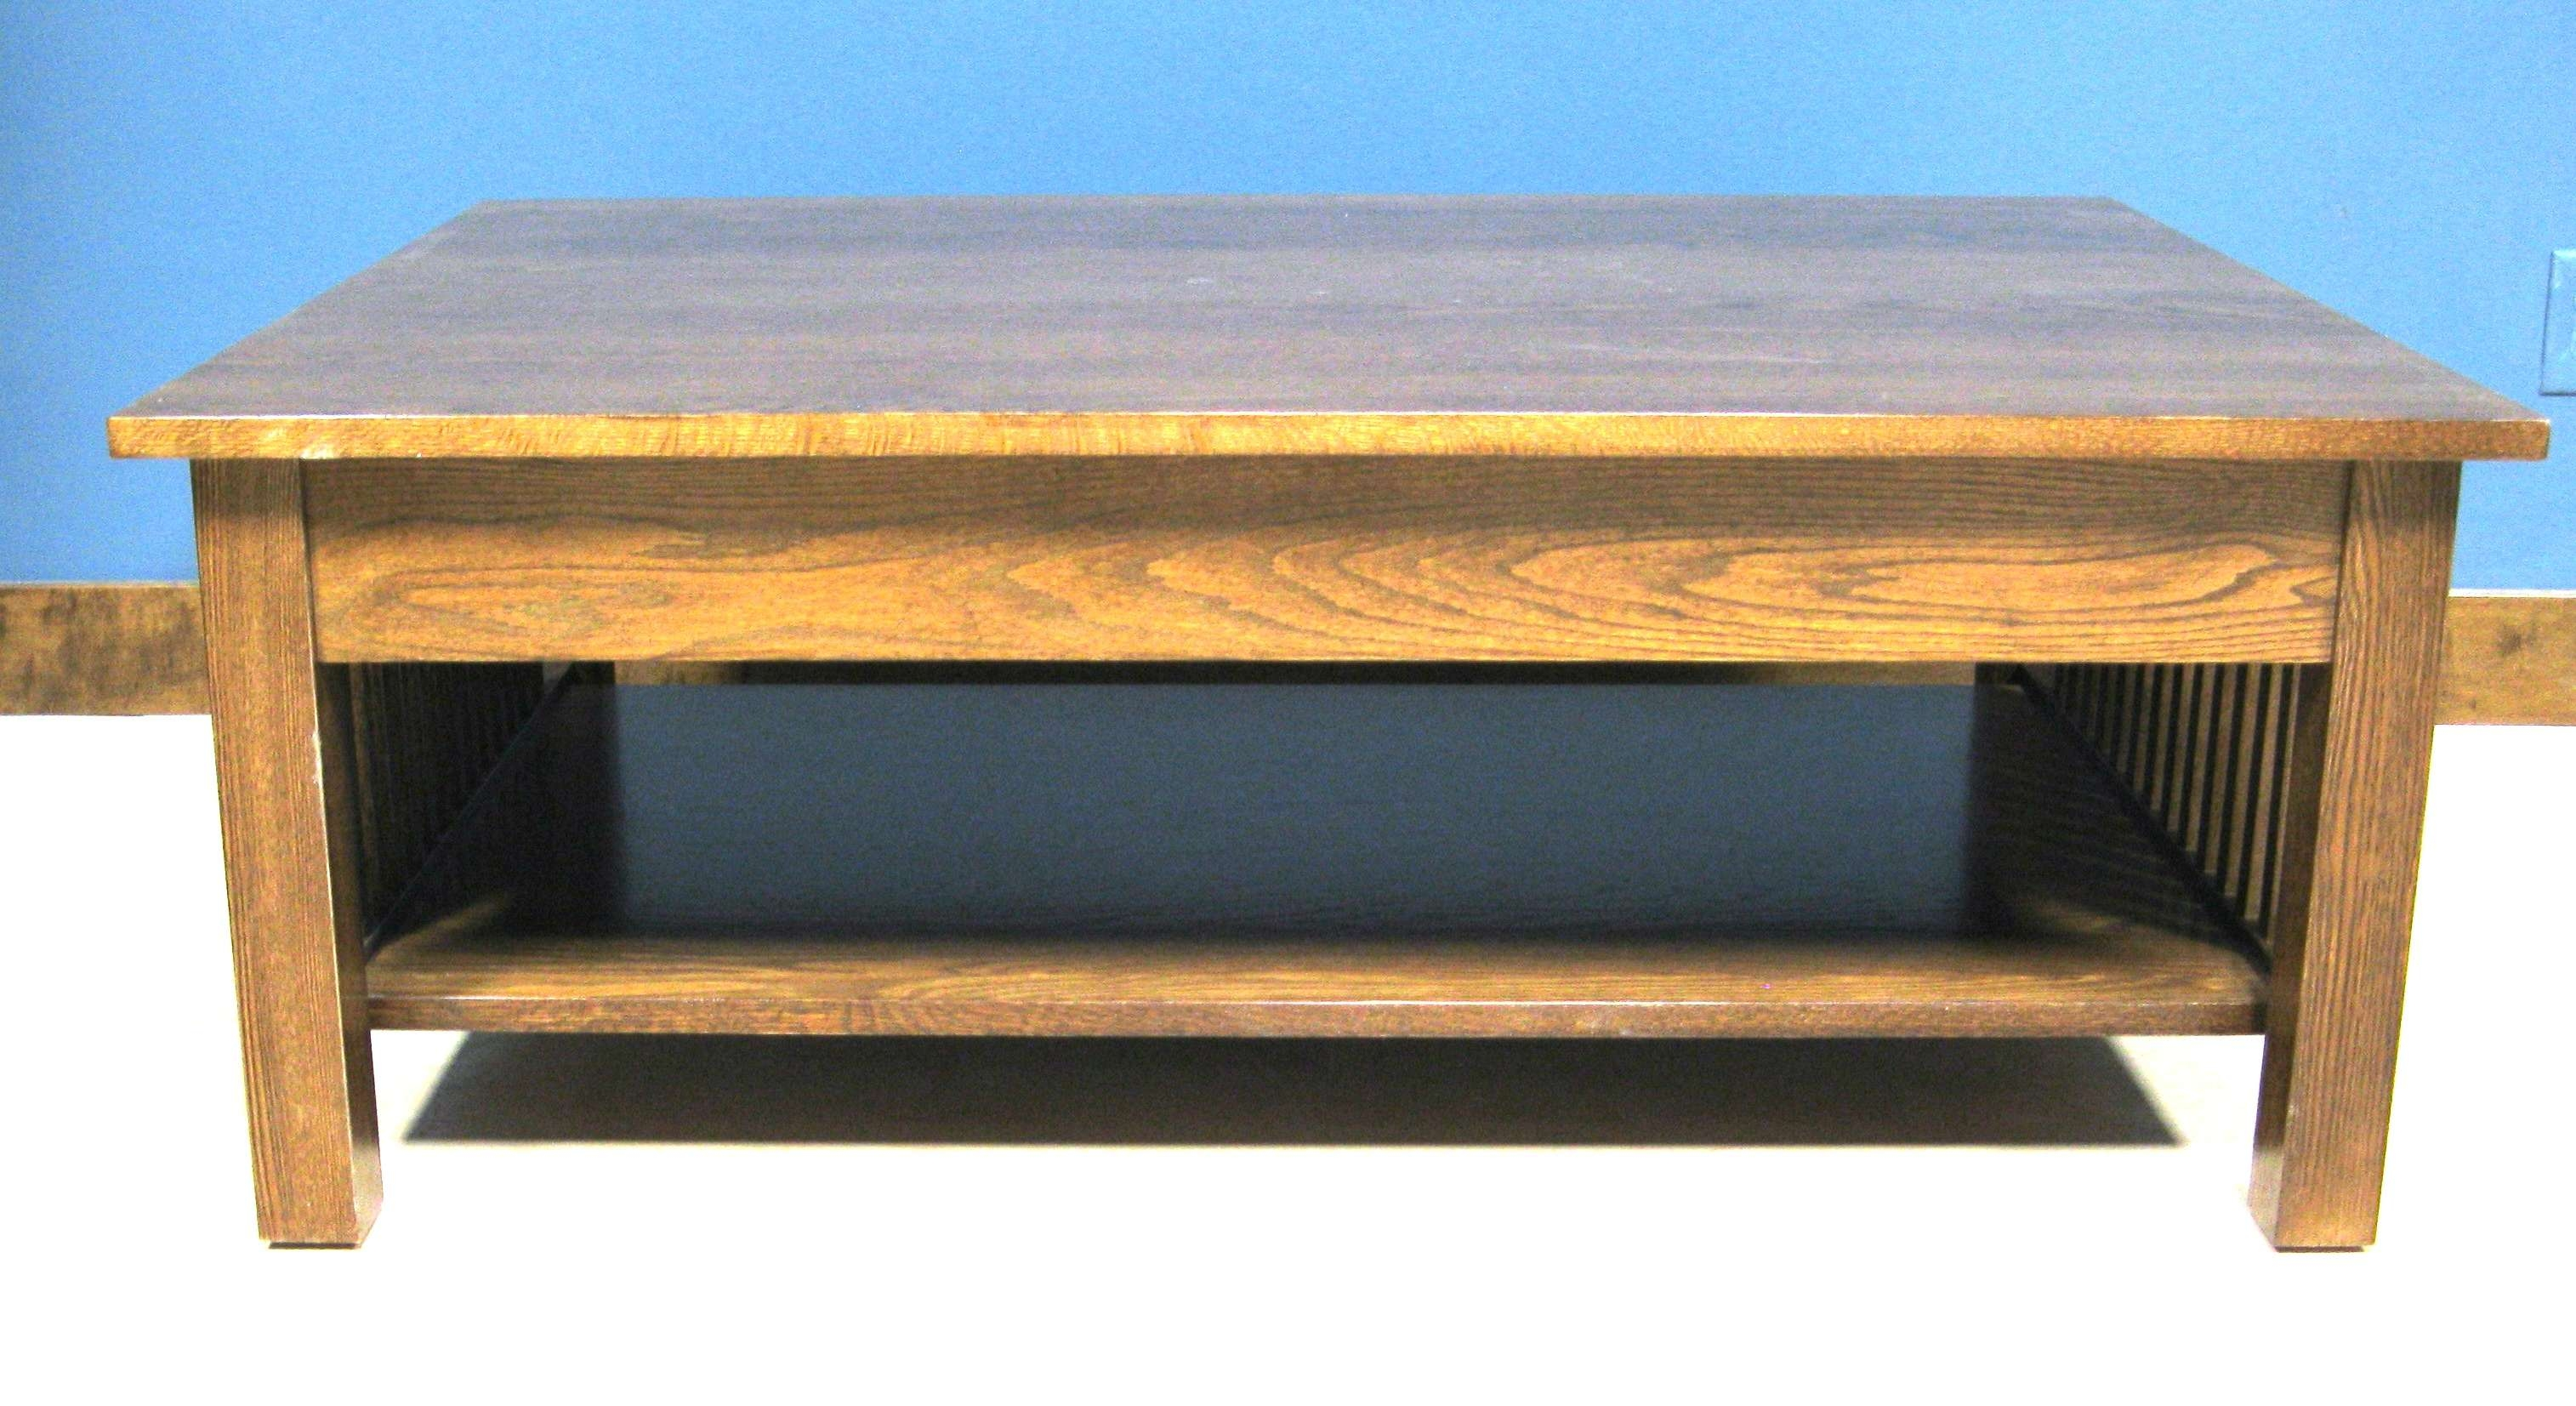 Recent Square Coffee Table Oak With Regard To Square Coffee Table W/ Drawer (View 13 of 20)